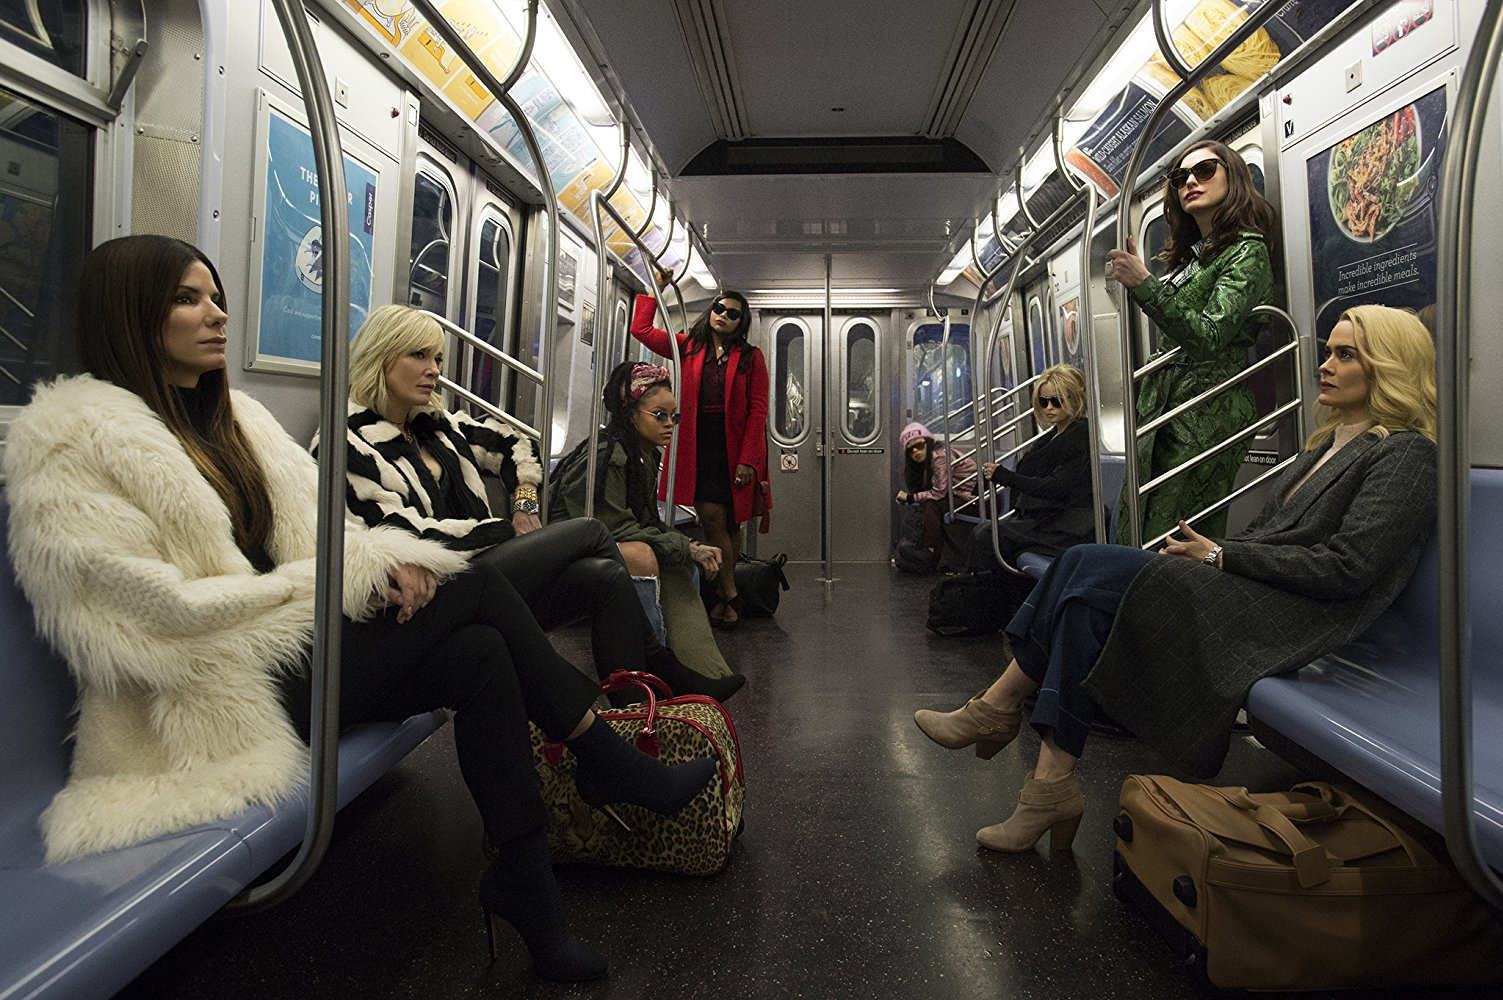 ocean's 8, movie review, lucas mirabella